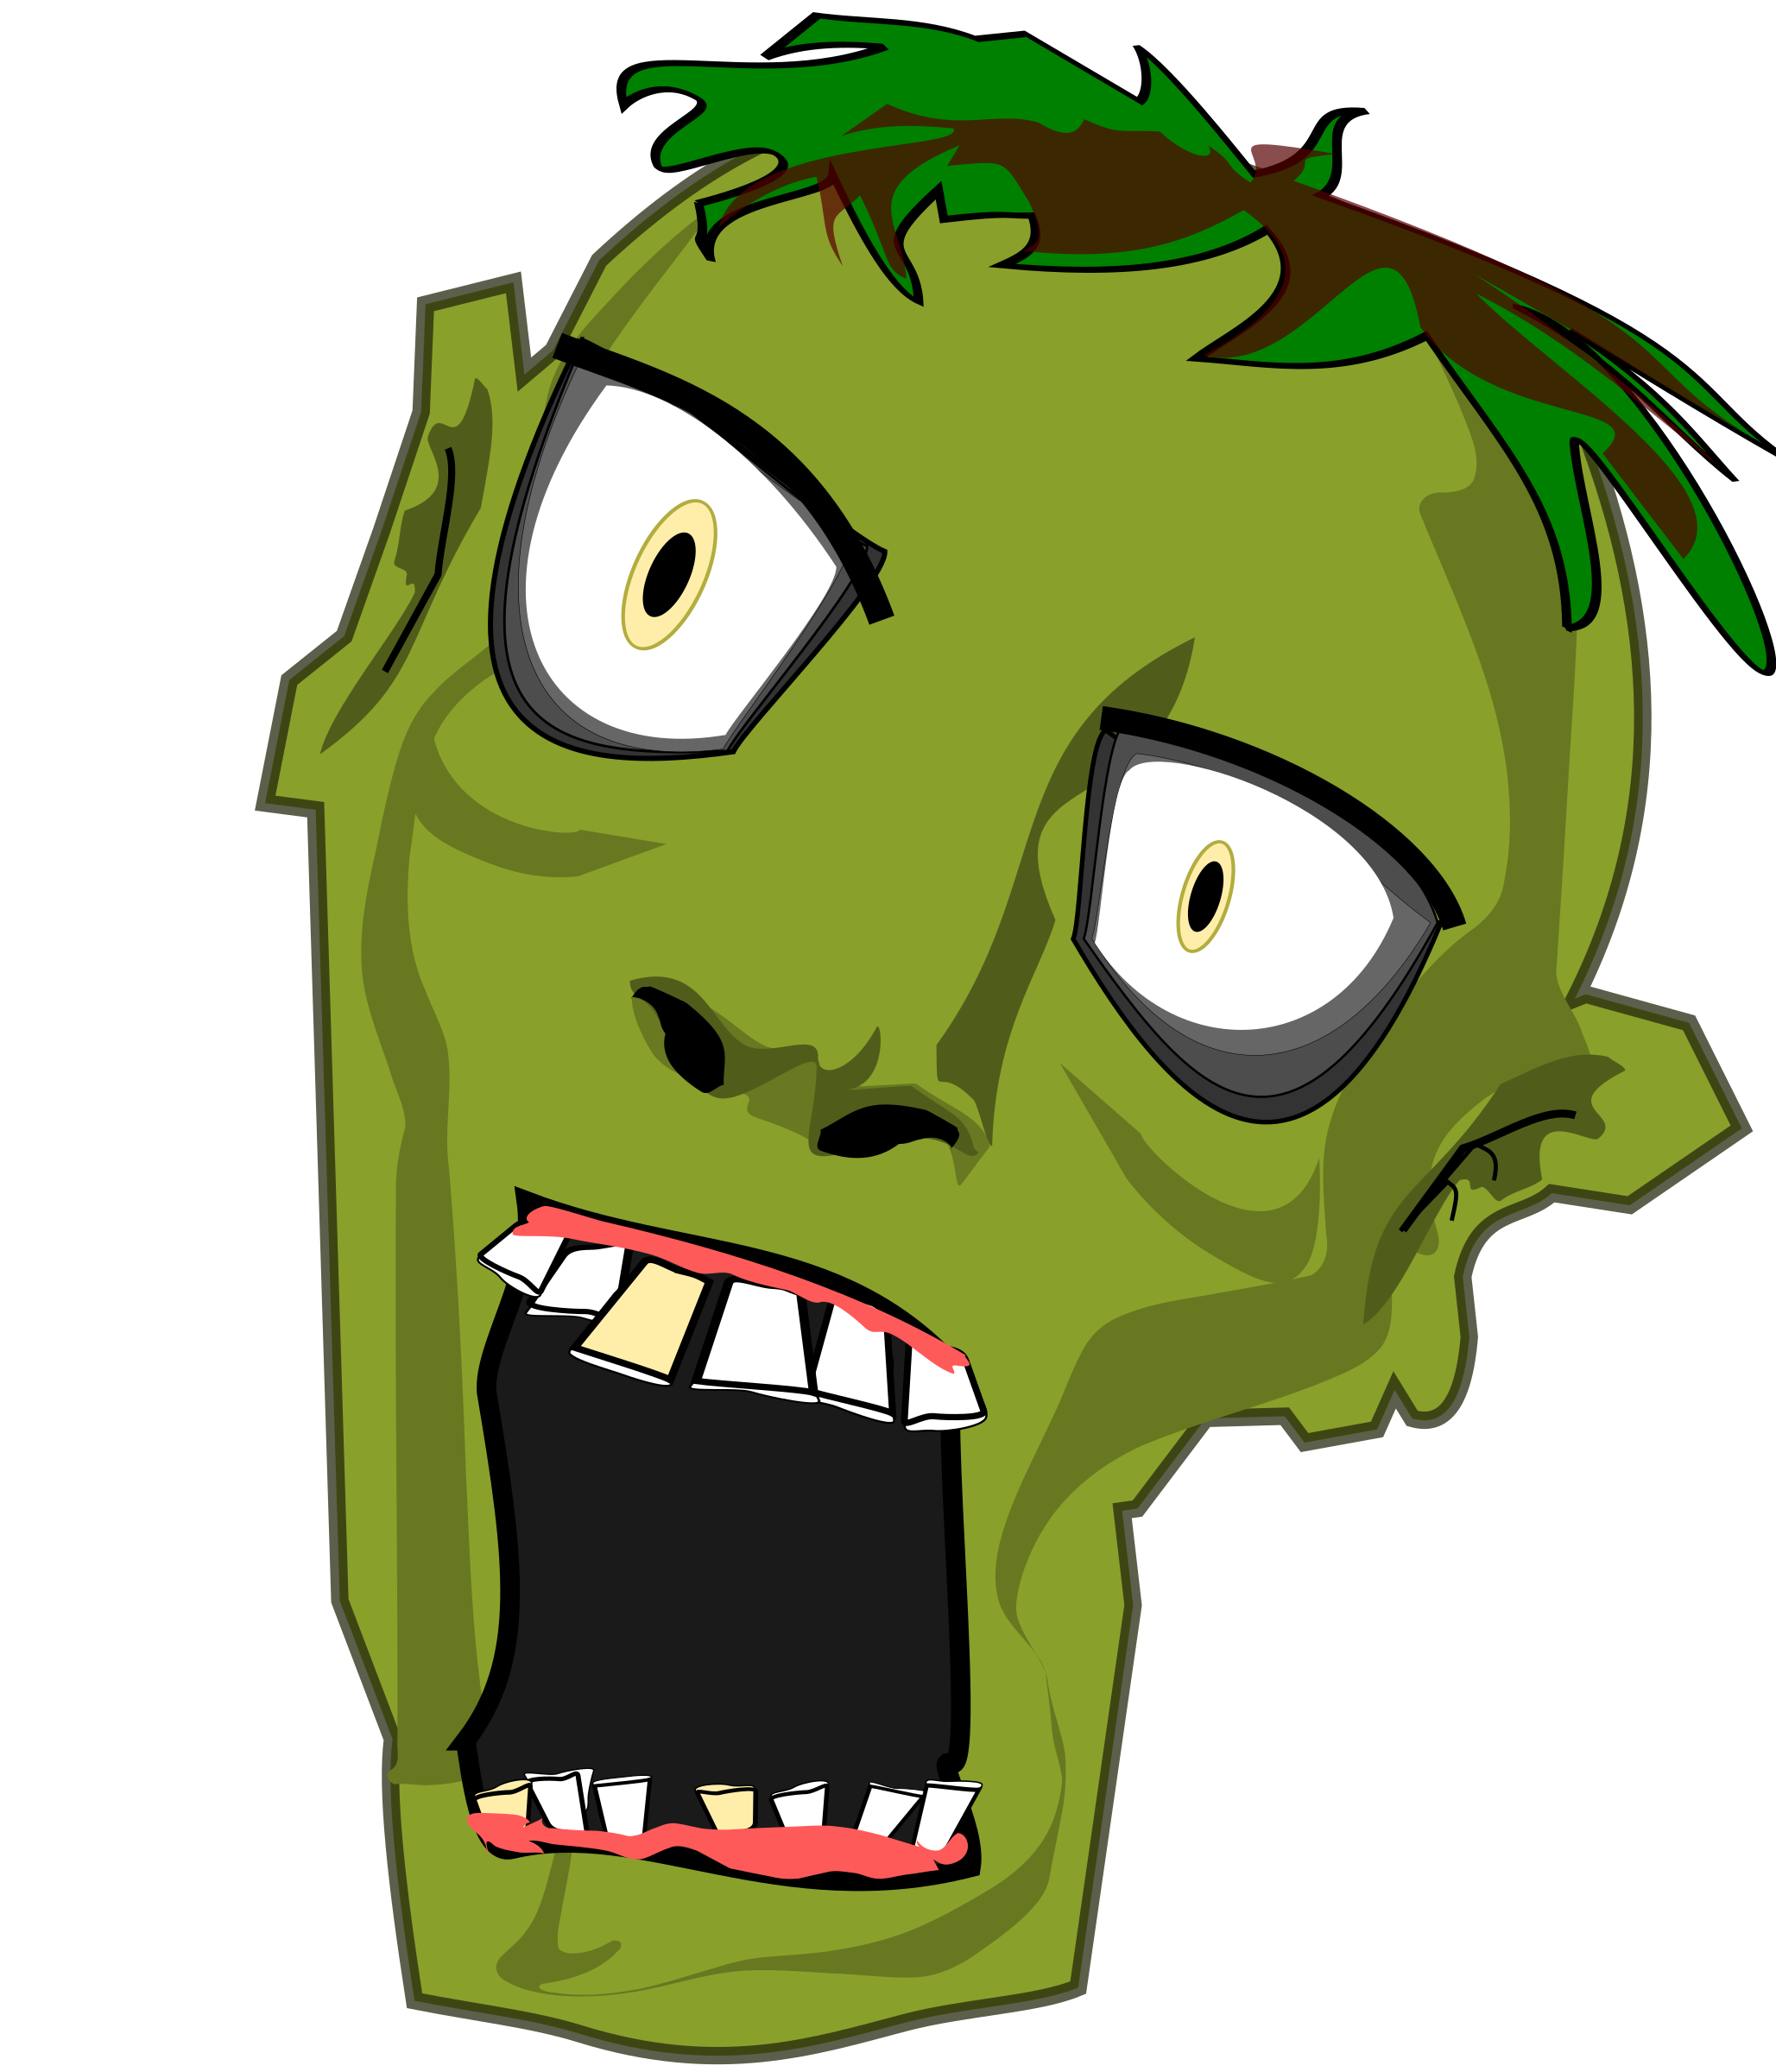 Mouth clipart zombie, Mouth zombie Transparent FREE for.